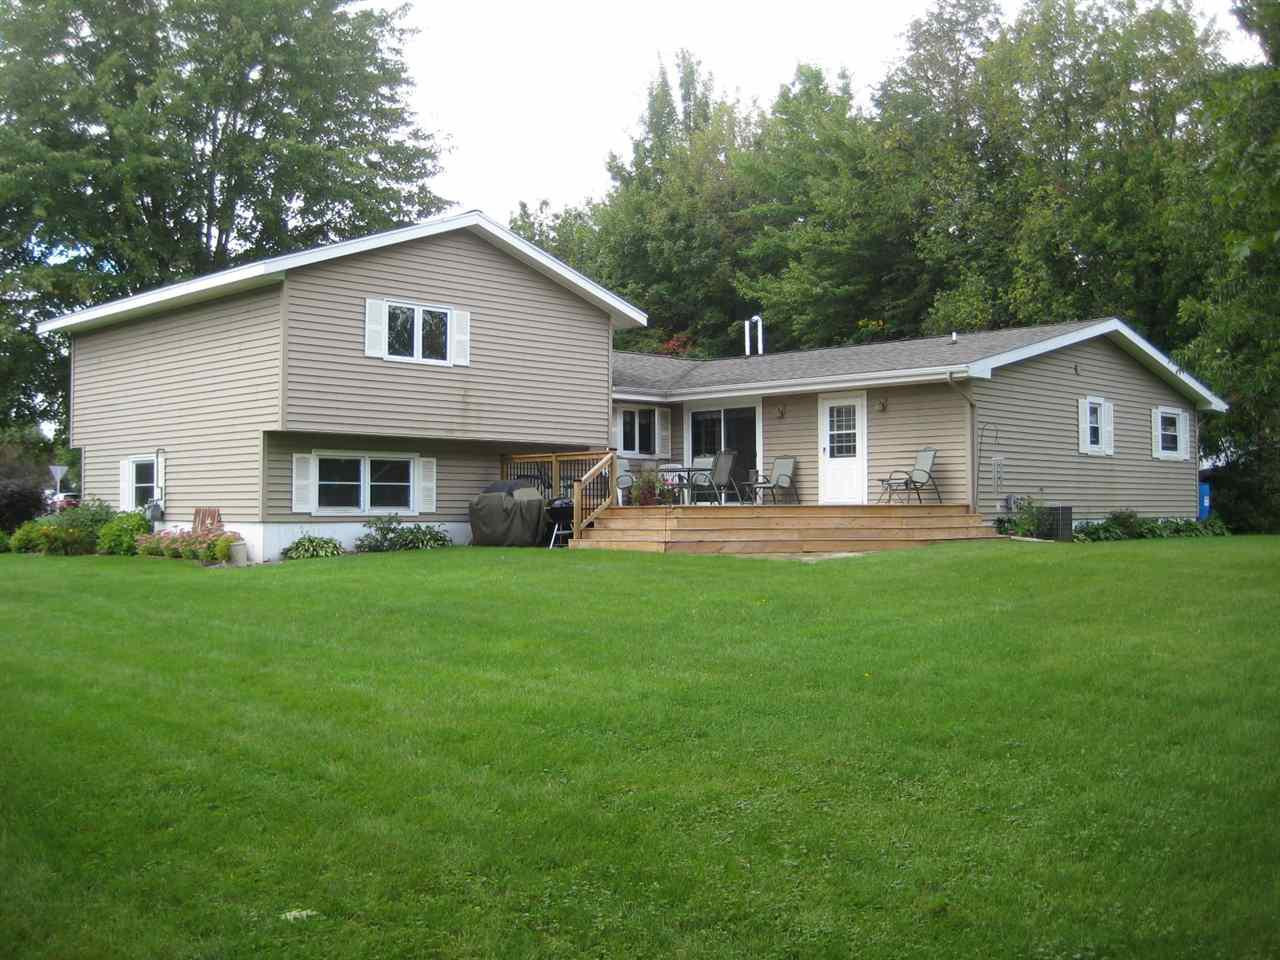 Move in ready 4 bedroom (2 master suites), 3 bath home located in the City of Medford. Updated kitchen with new black stainless steel appliances. Features a main floor master addition with walk-in closet, private full bath with 6? whirlpool tub, main floor laundry, large dining/kitchen area and living room with wood burning fireplace. Forced air gas furnace and central air. Finished lower level family room with look out windows. The refrigerator, stove, microwave, dishwasher, washer, dryer, window treatments and storage shed are included in the sale price.